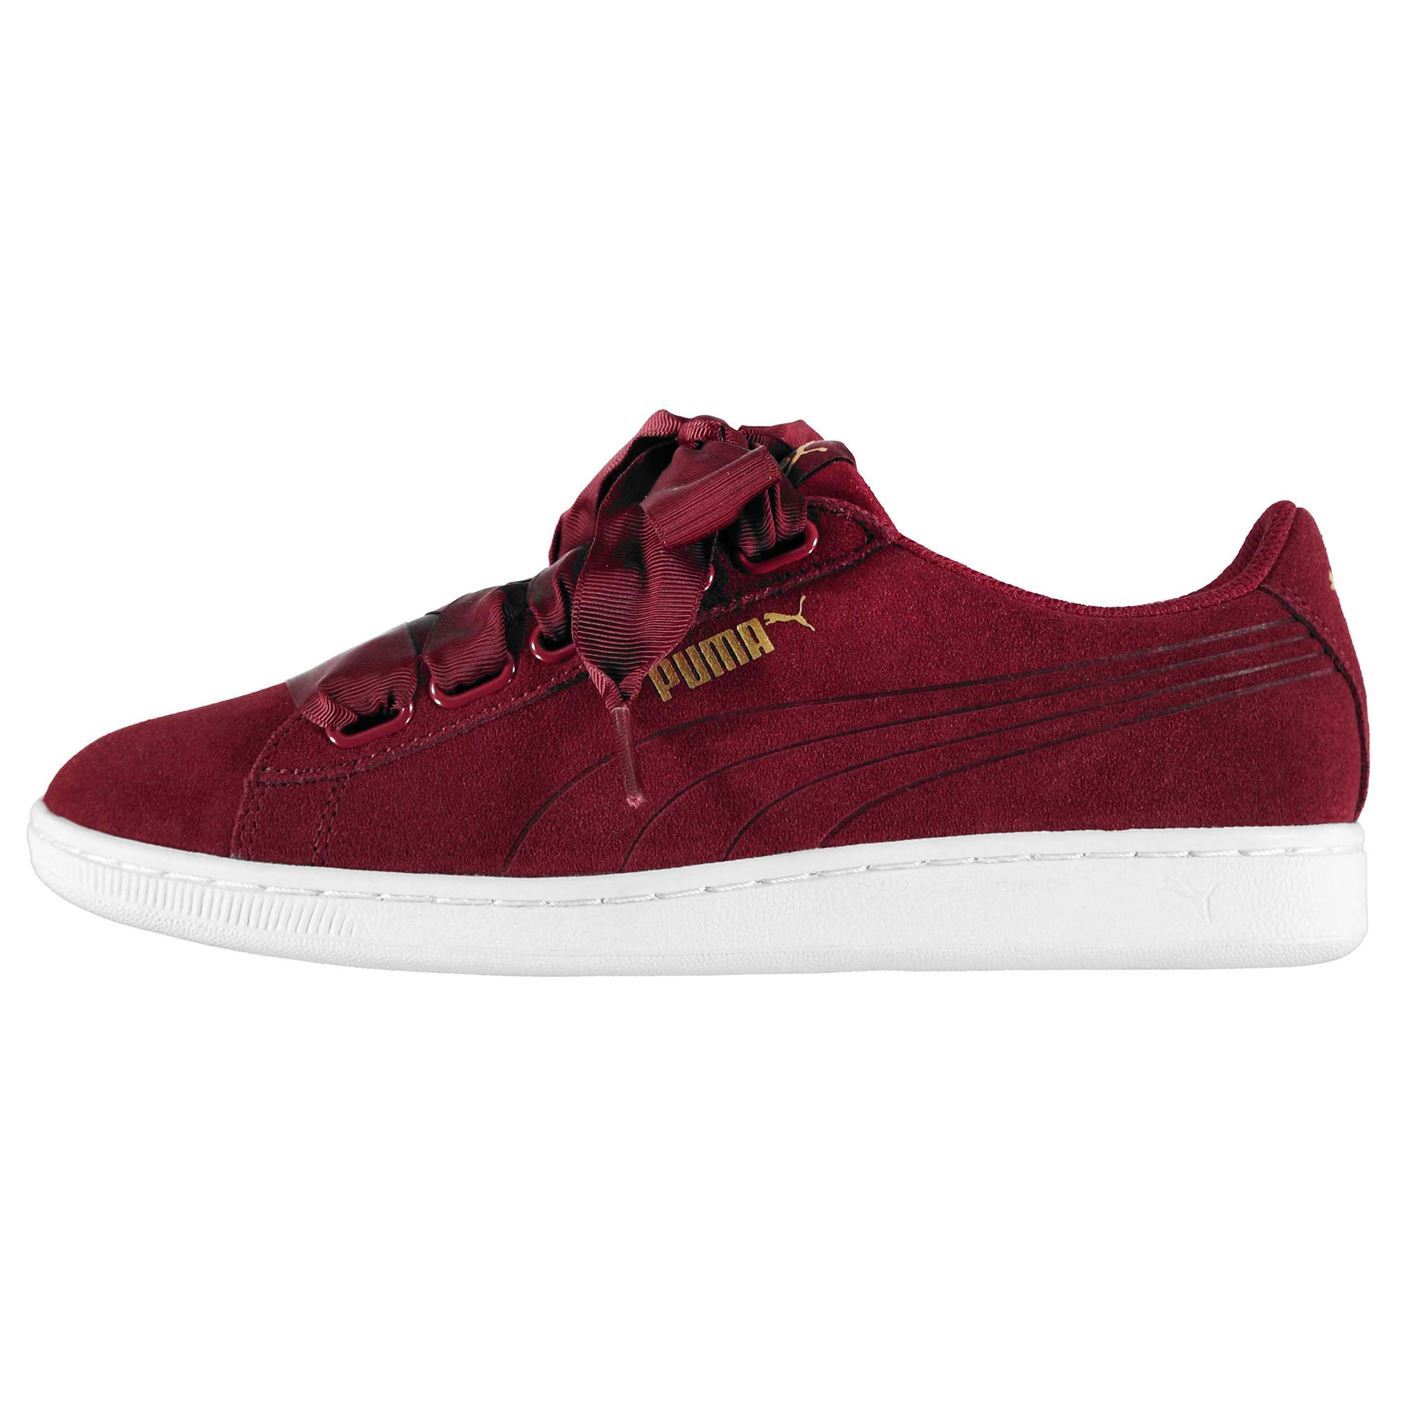 2969113baabf Puma Womens Vikky Ribbon Trainers Sneakers Shoes Lace Up Padded ...